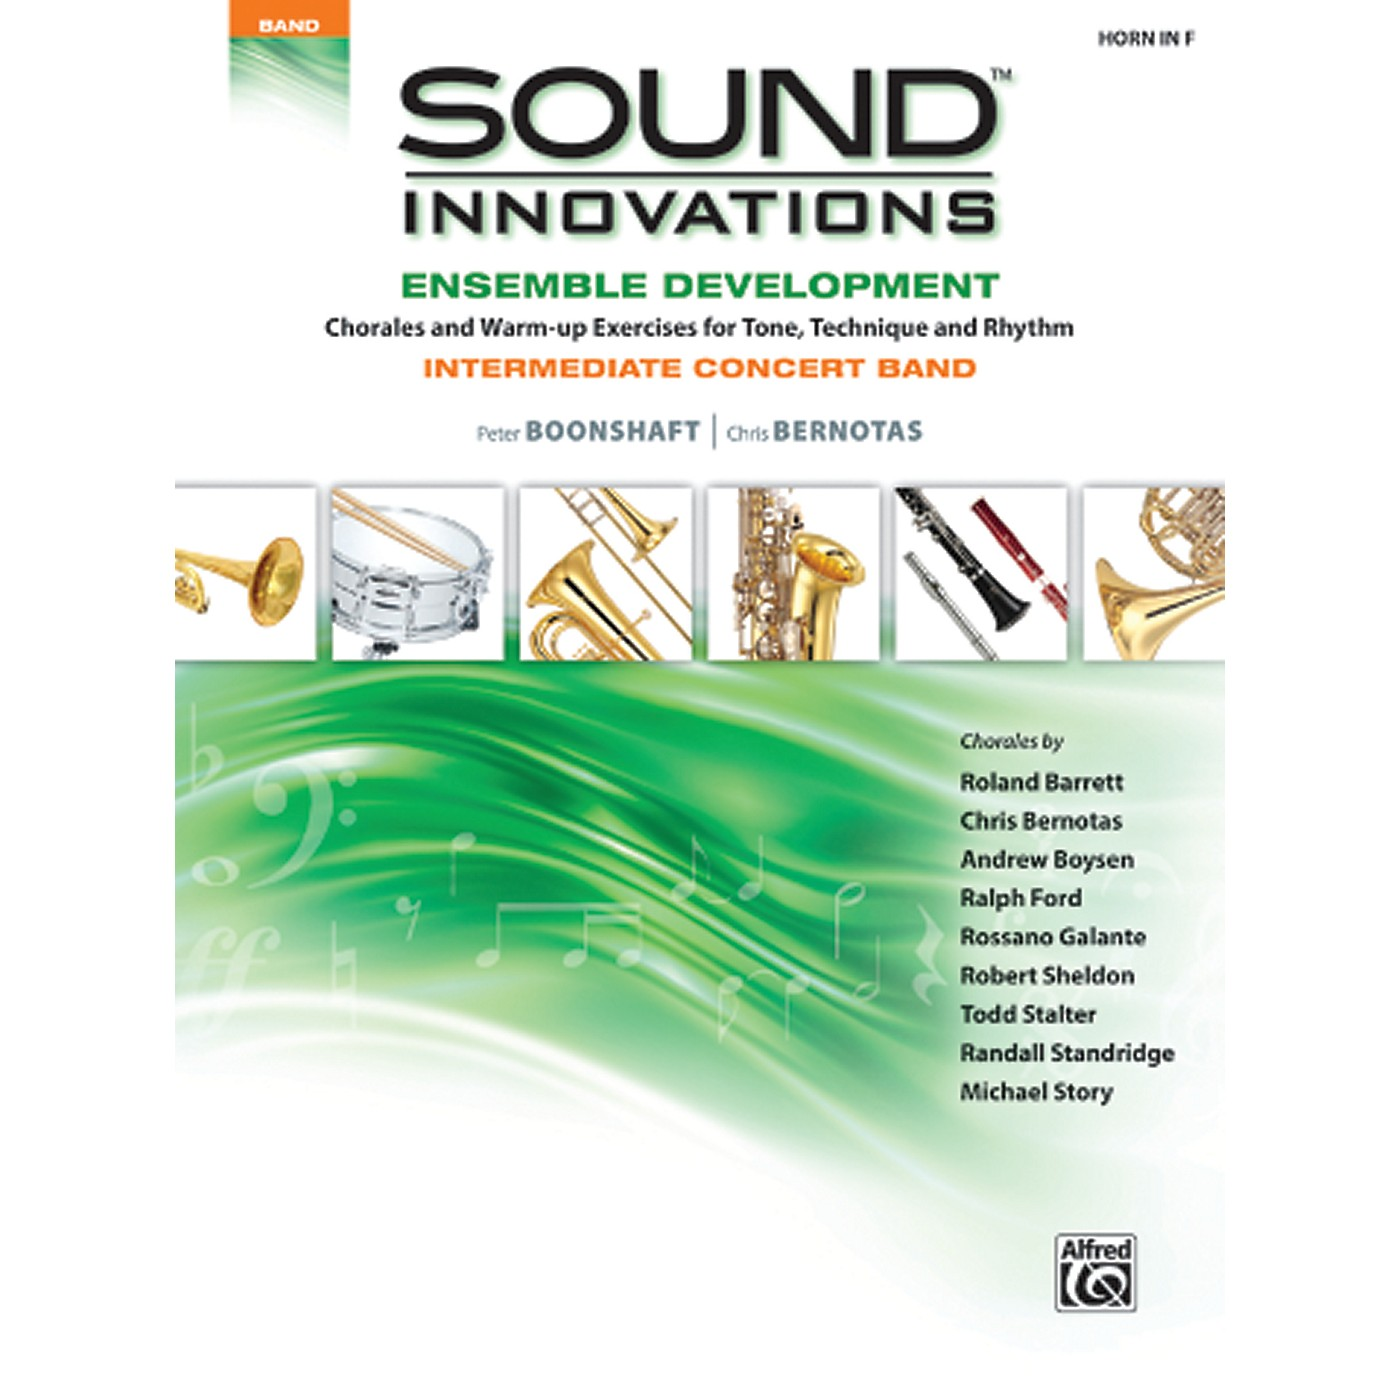 Alfred Sound Innovations Concert Band Ensemble Development Horn in F Book thumbnail